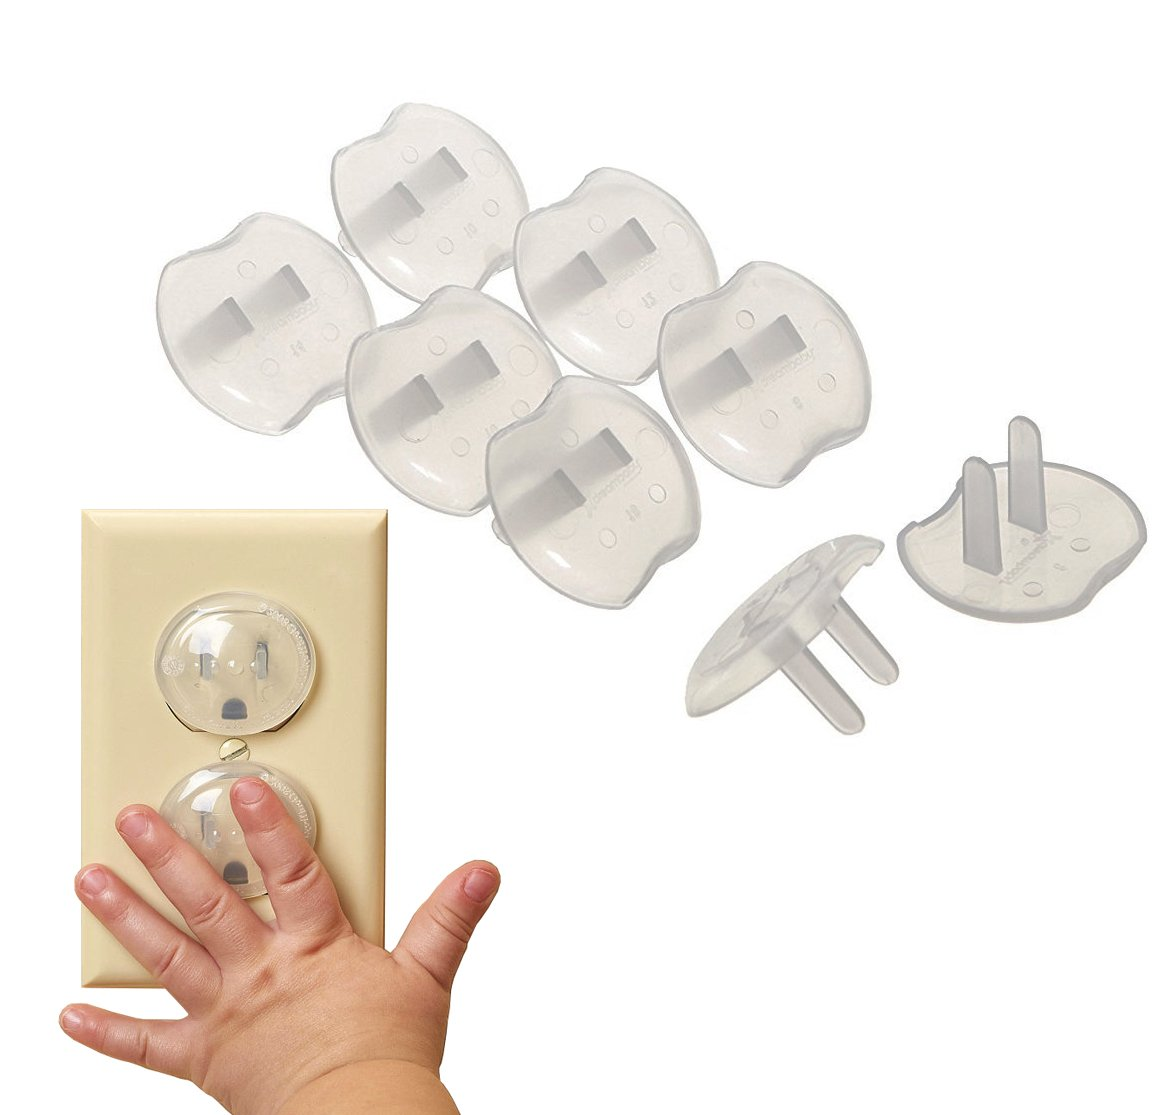 Plug Covers Outlet Protectors Set of 8 BNYD